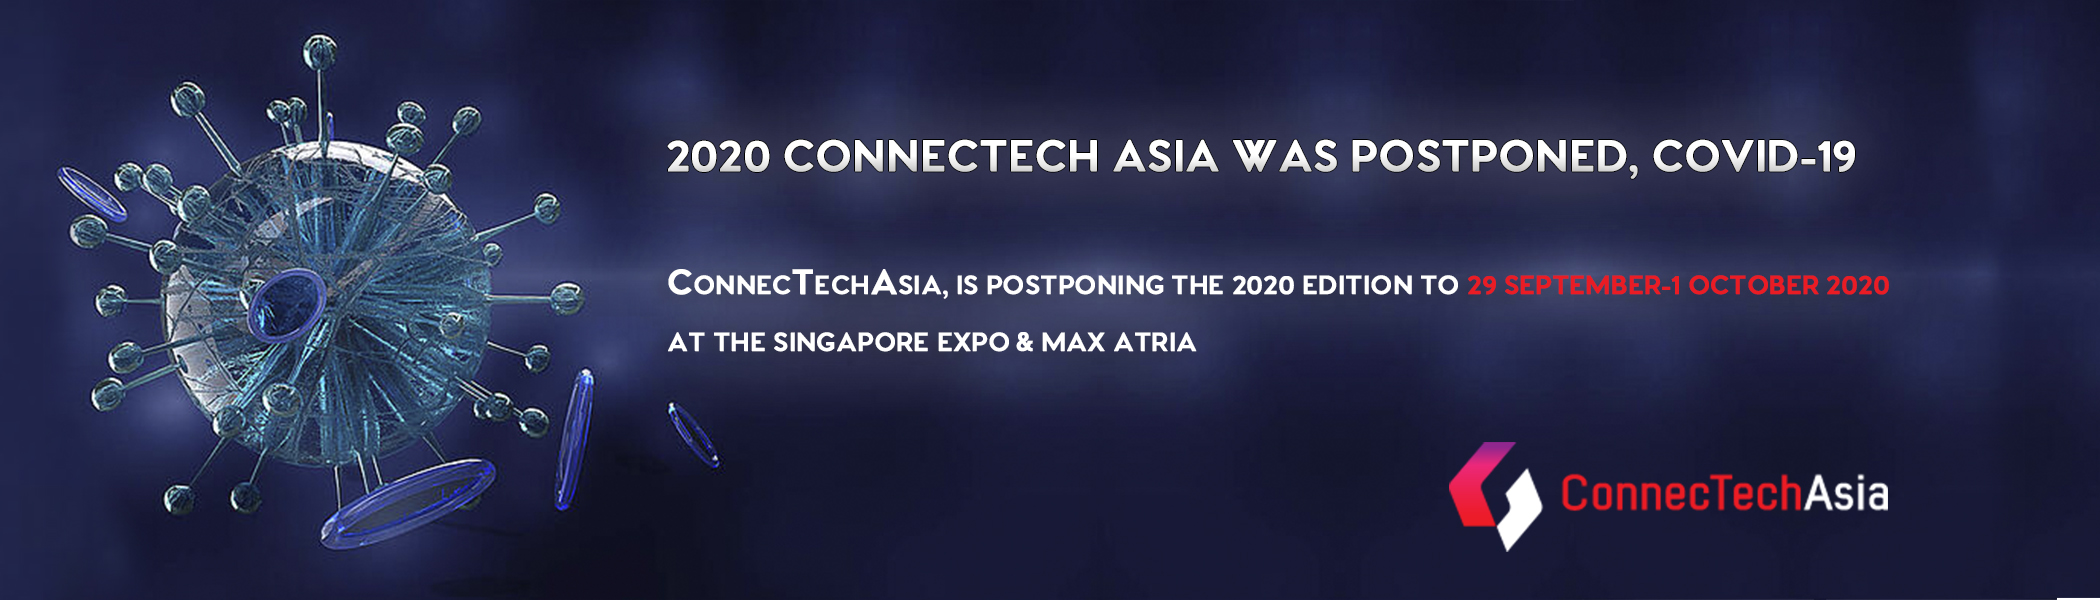 2020 CONNECTECHASIA POSTPONED NOTIFICATION